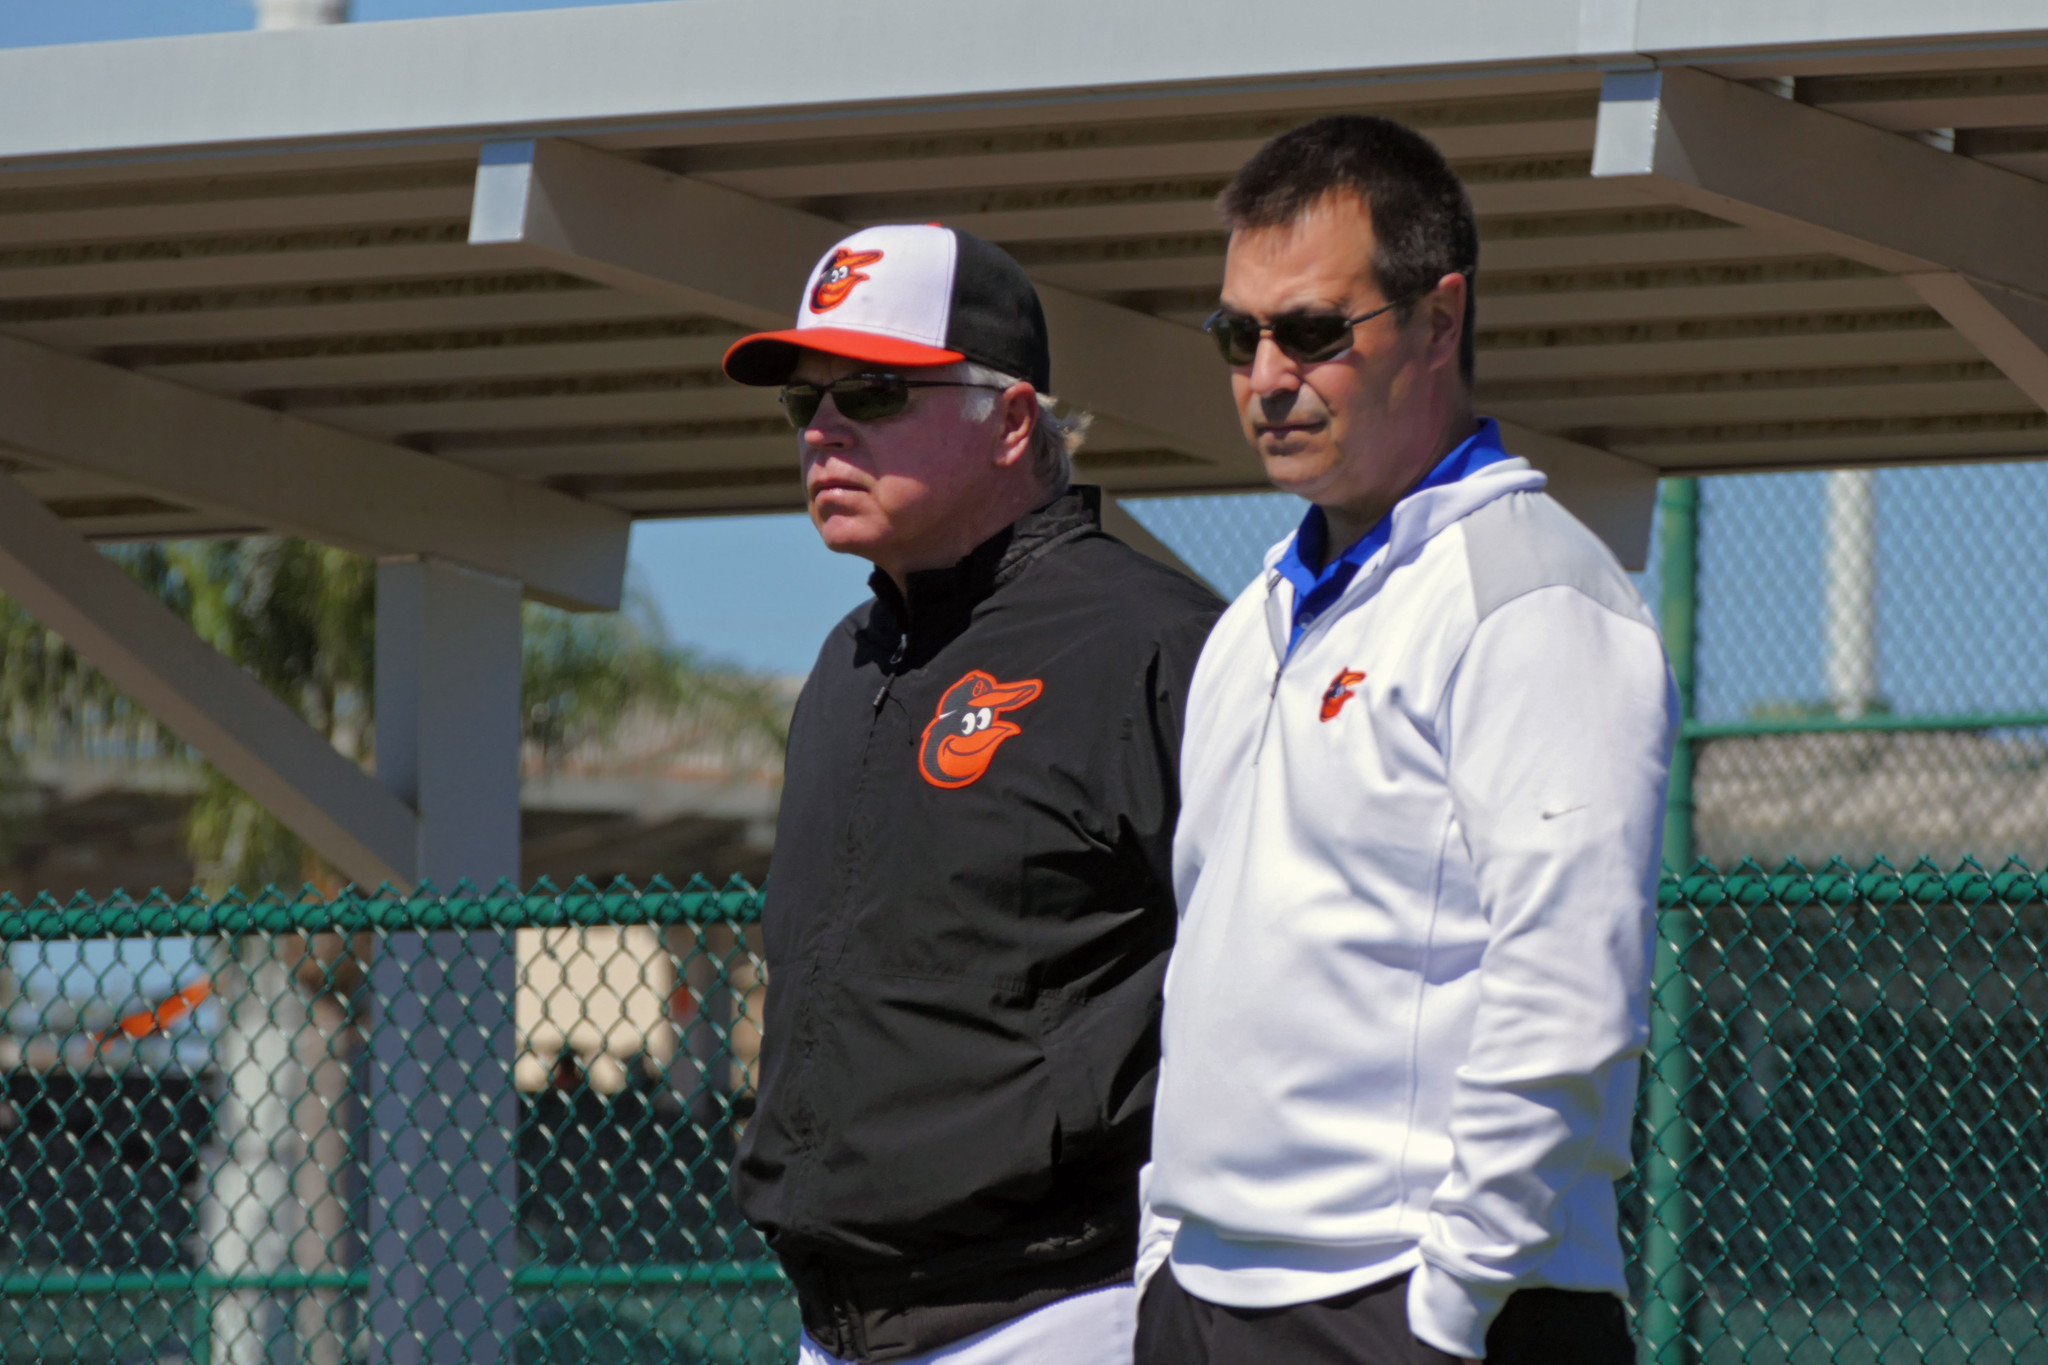 Bal-orioles-select-outfielders-aneury-tavarez-anthony-santander-in-rule-5-draft-20161208